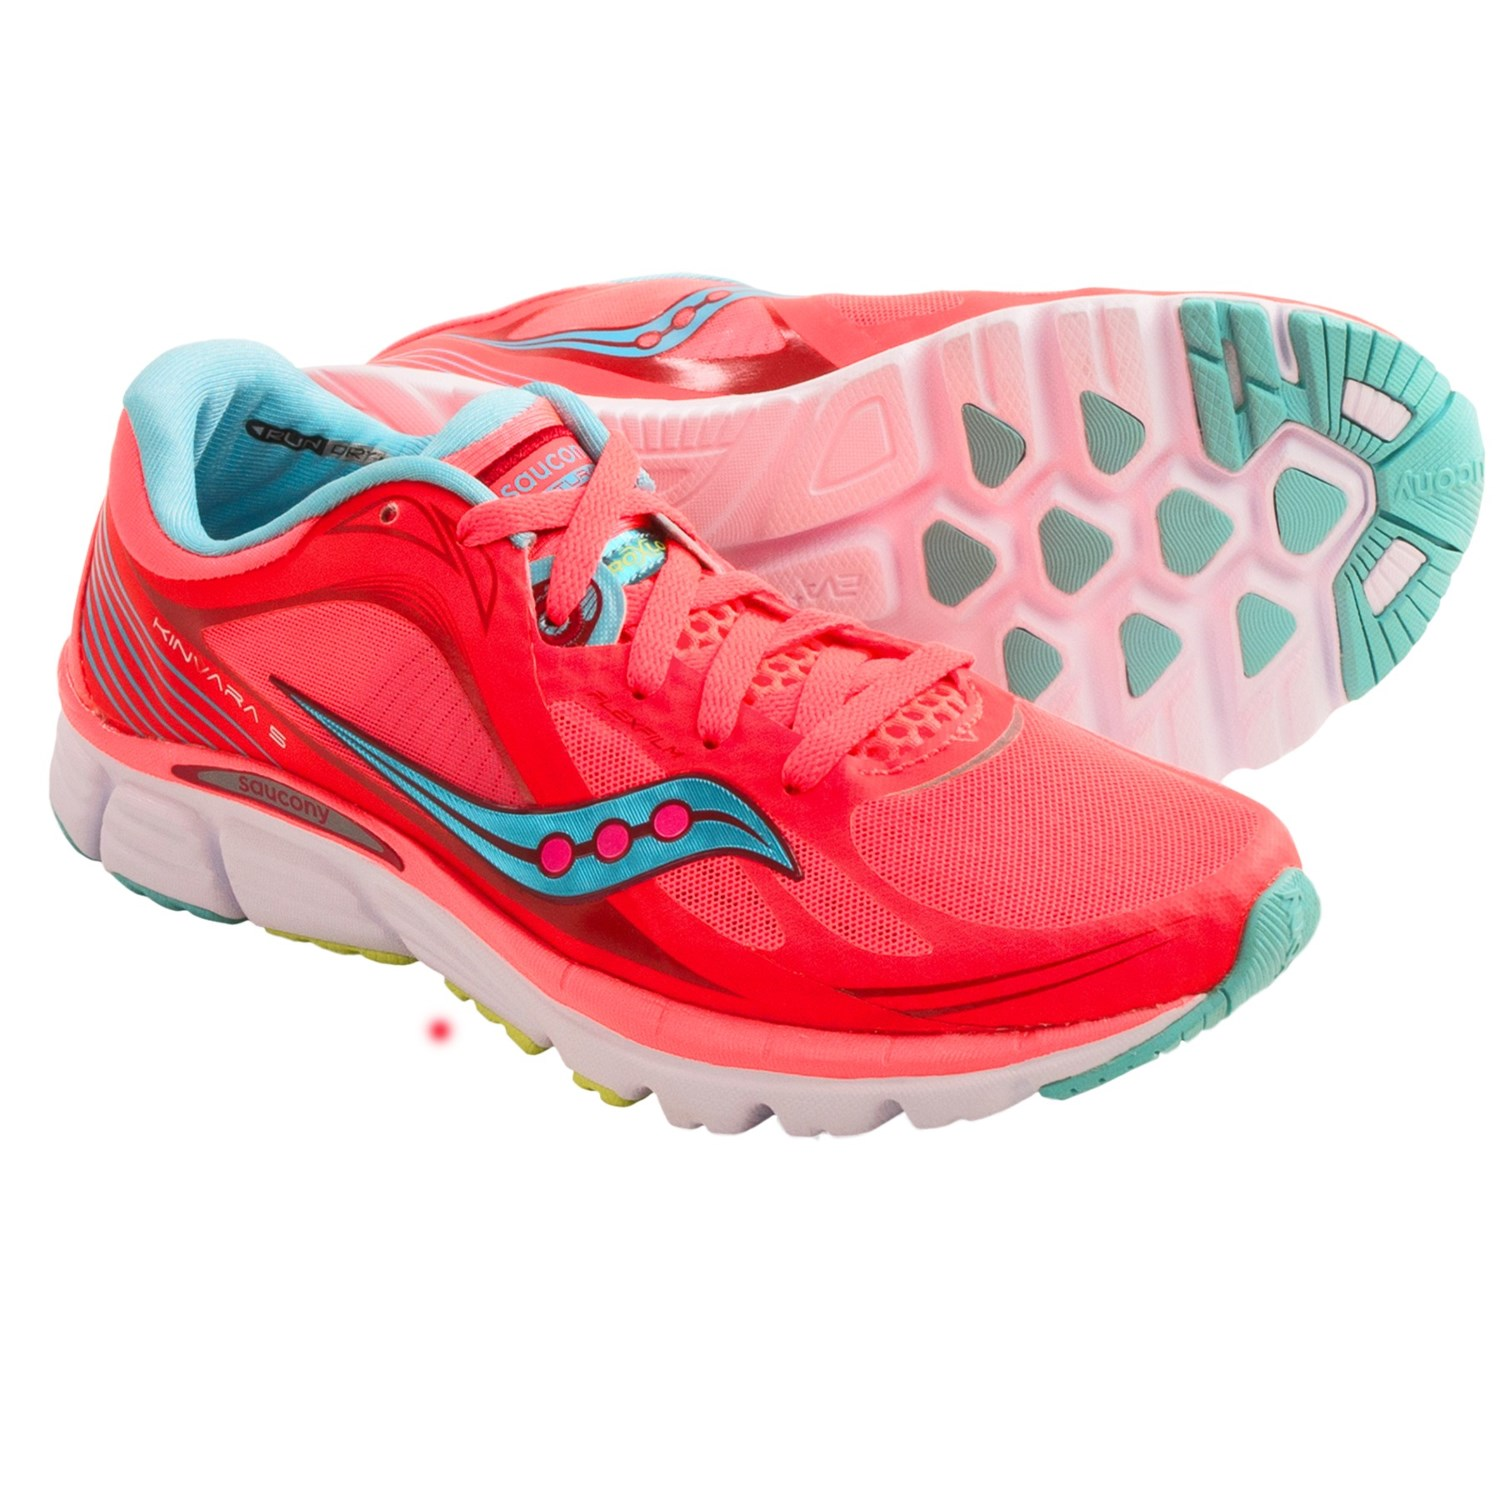 Something About the Saucony Women's ProGrid Triumph 7 Running Shoe